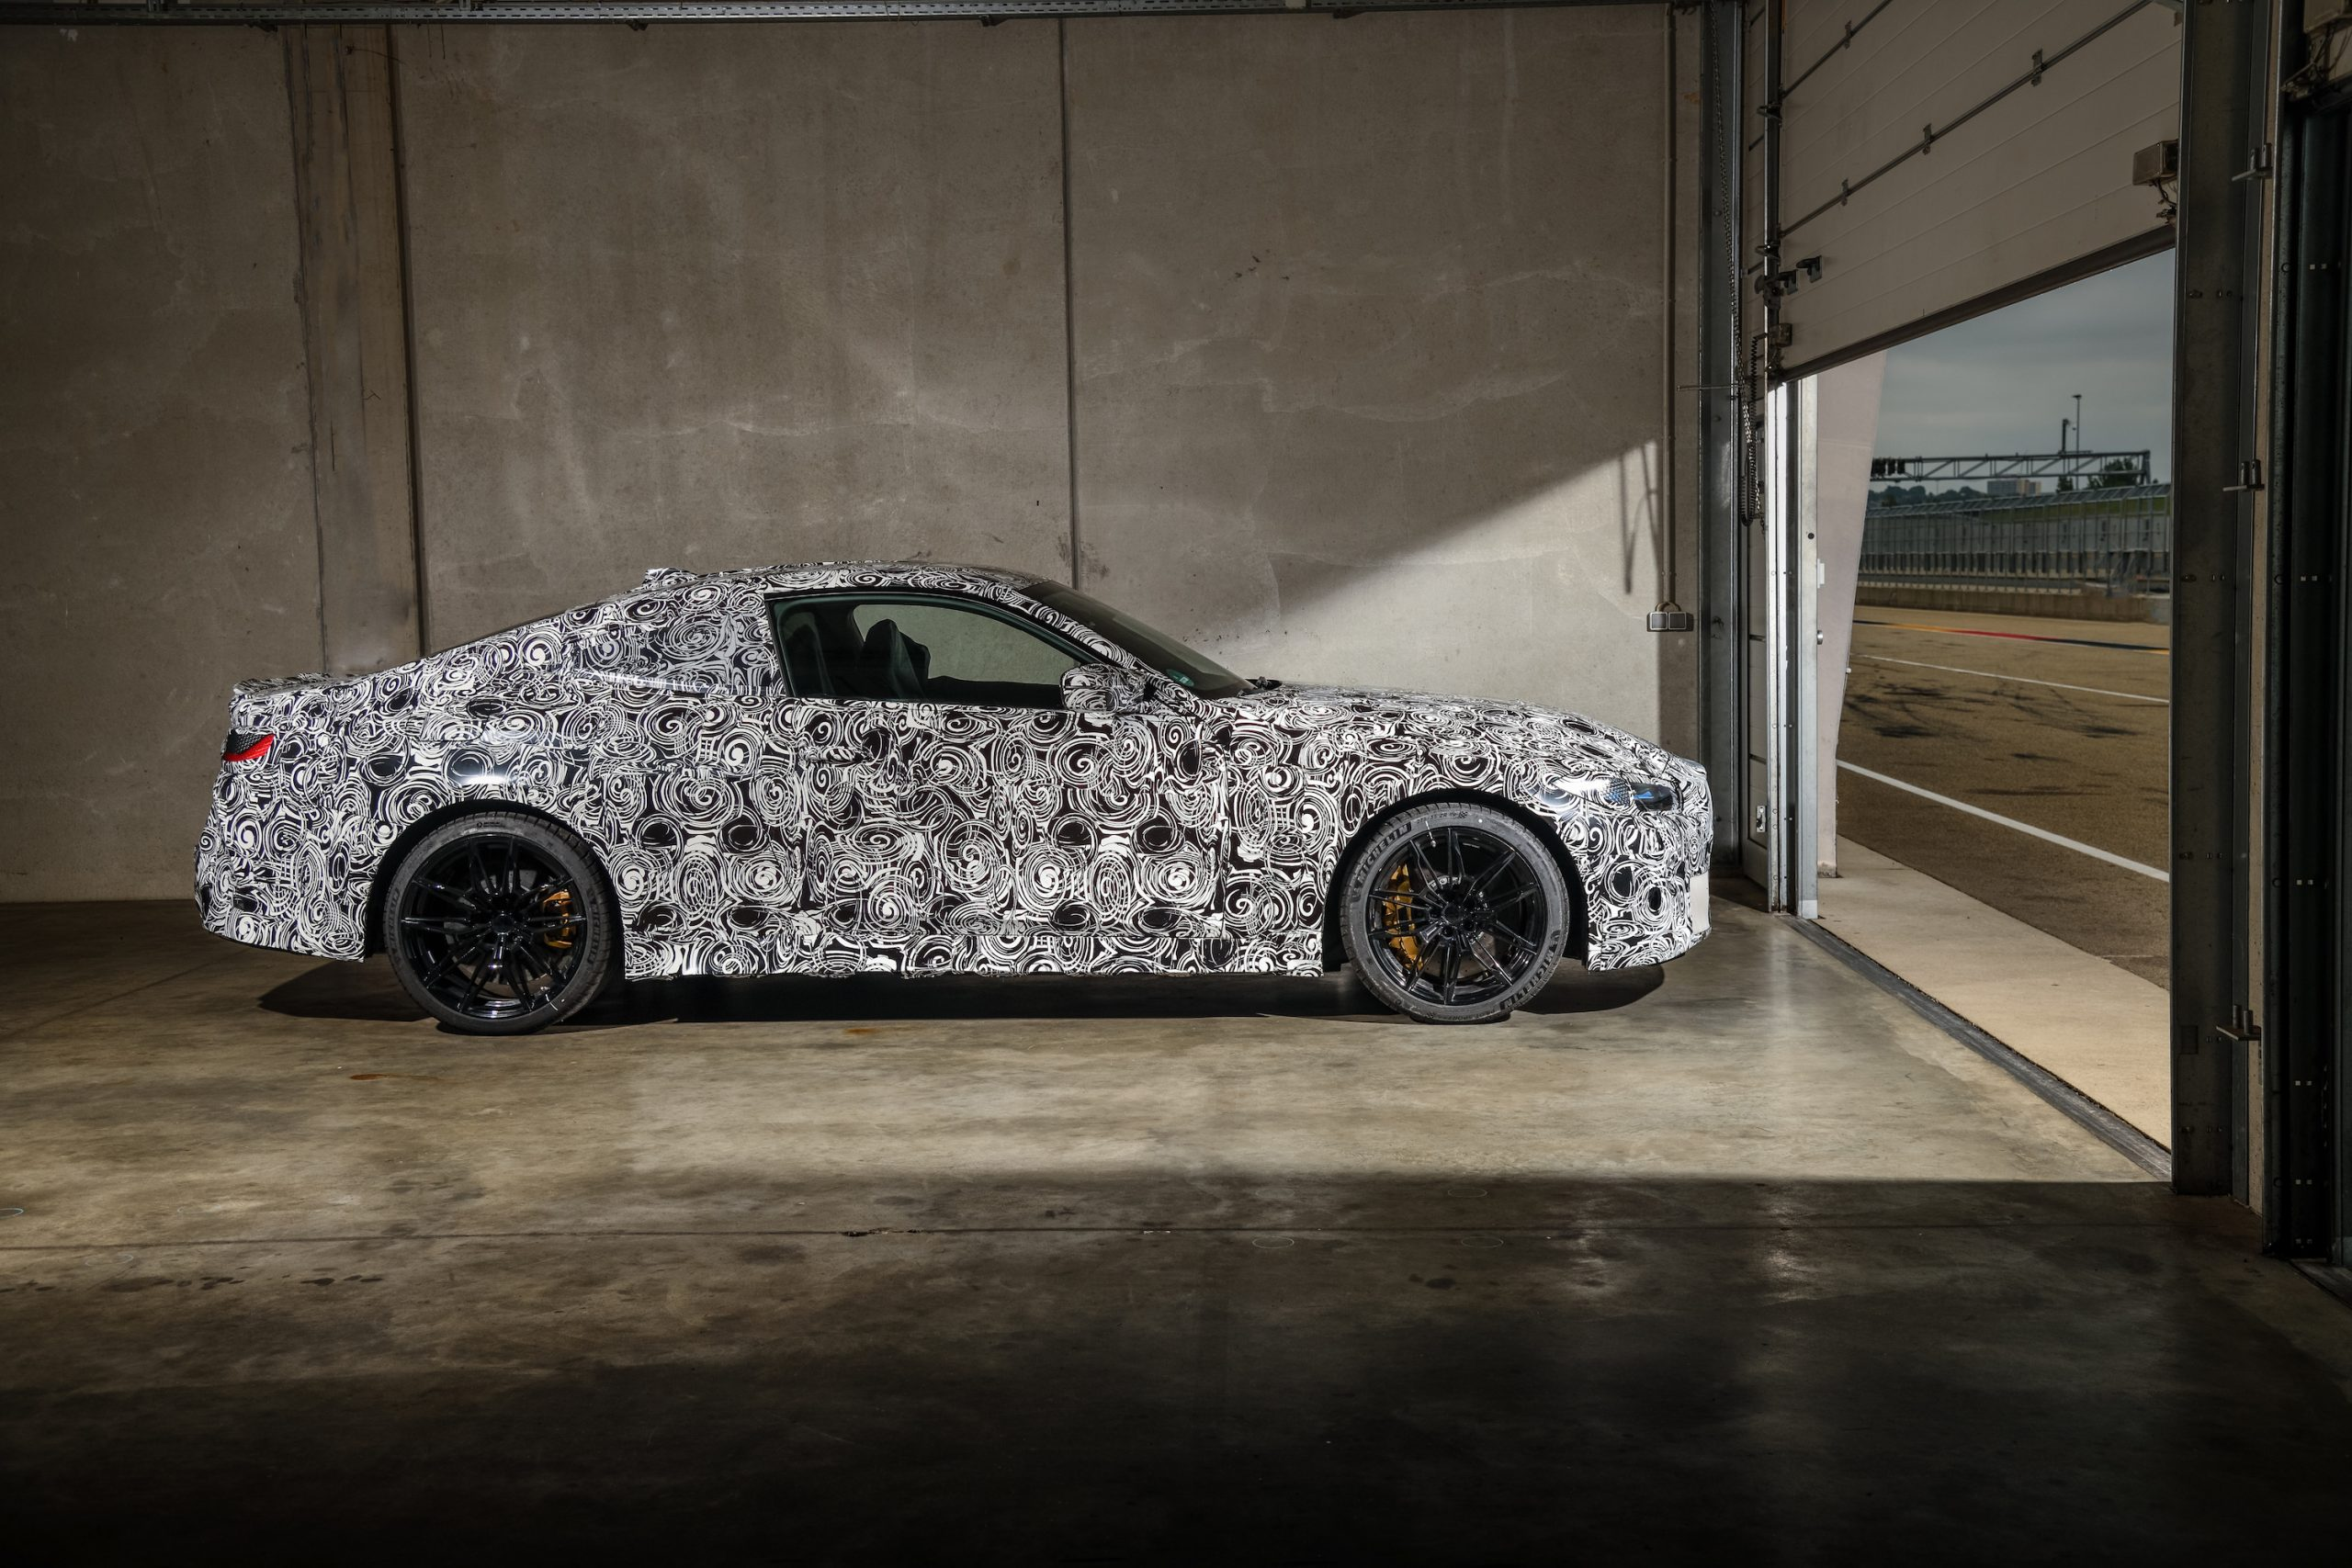 BMW M4 Coupe Side Profile in Garage